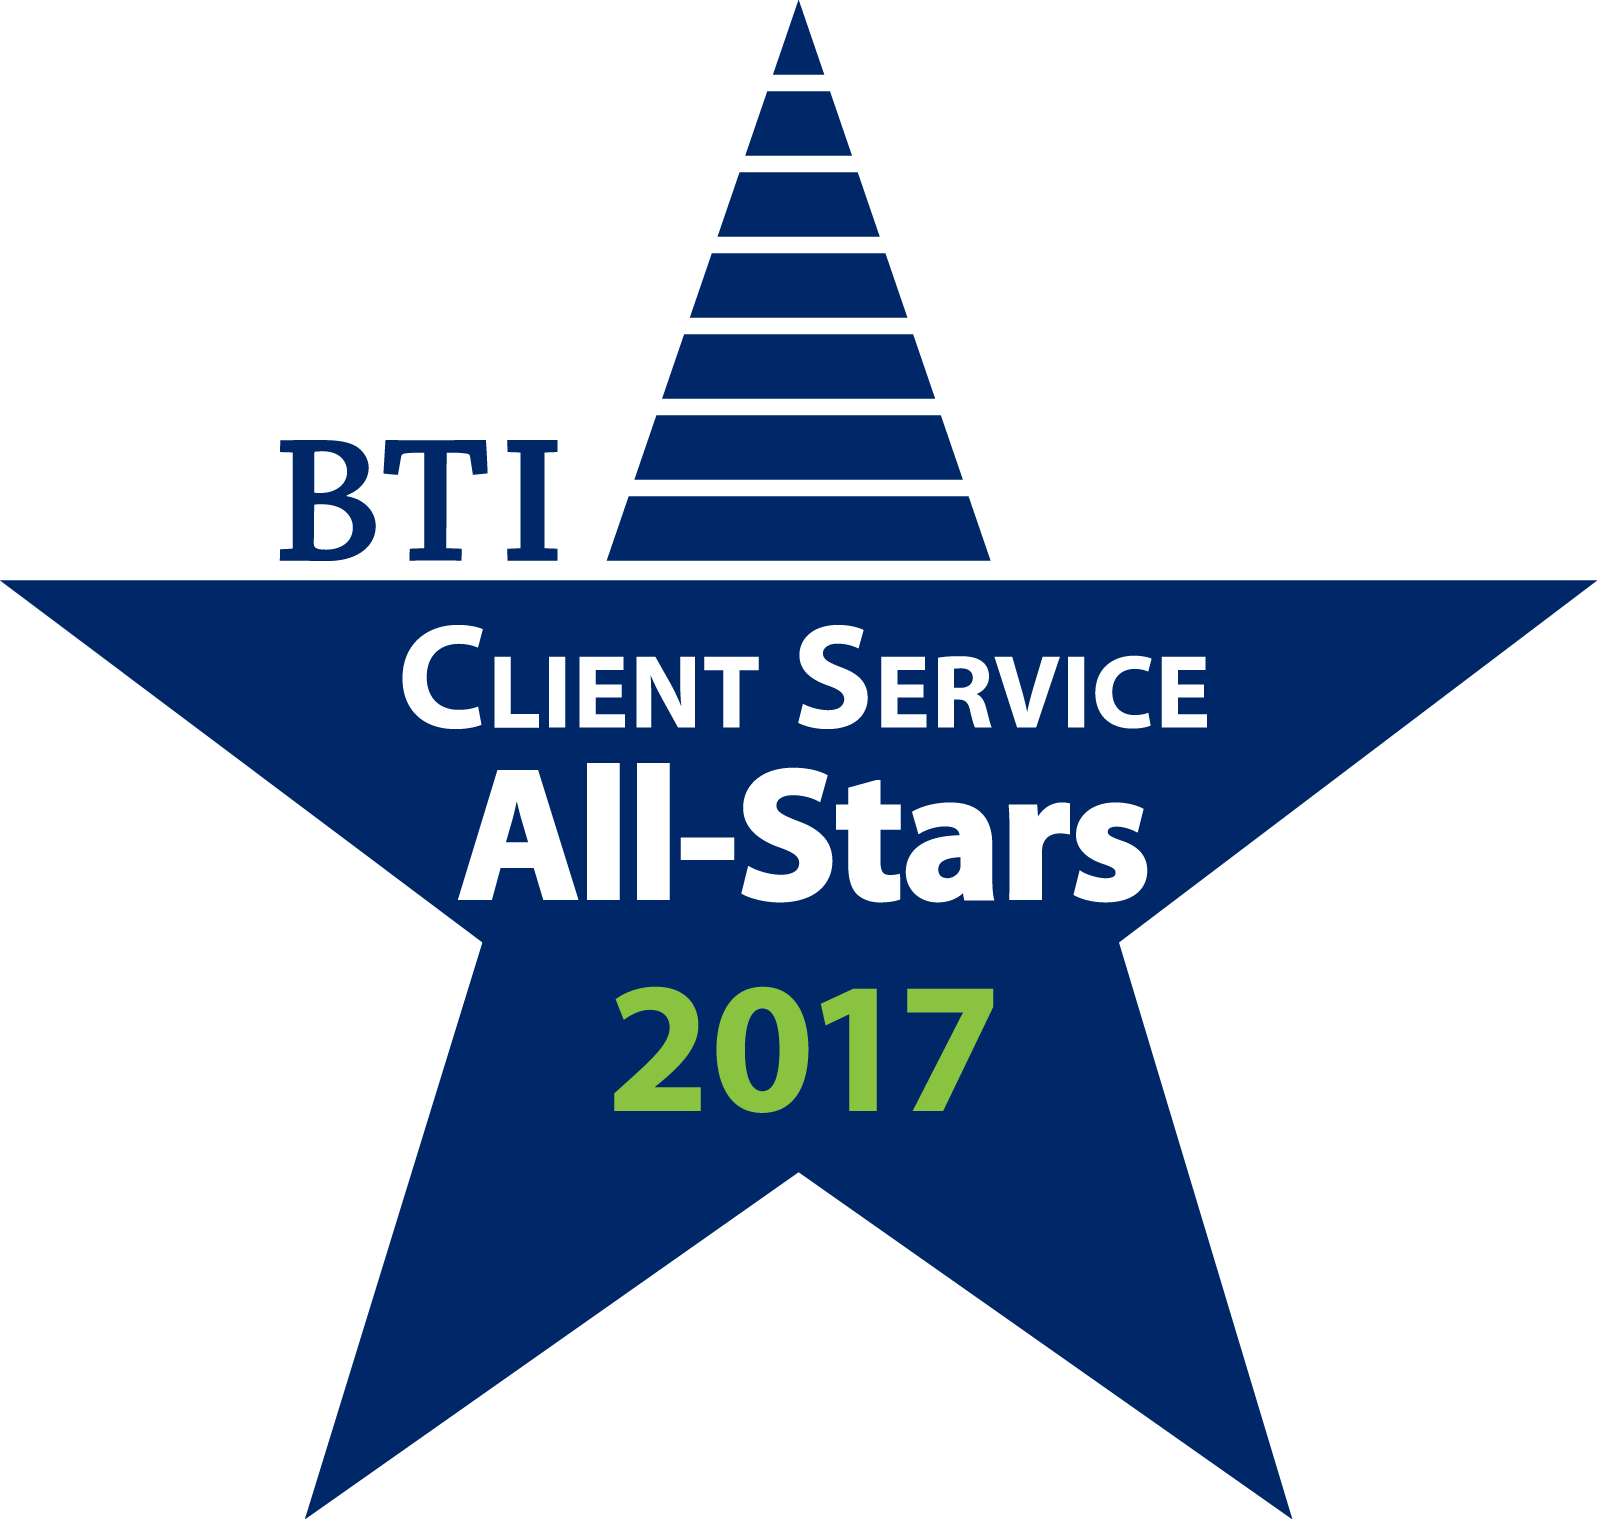 BTI Client Service All Star